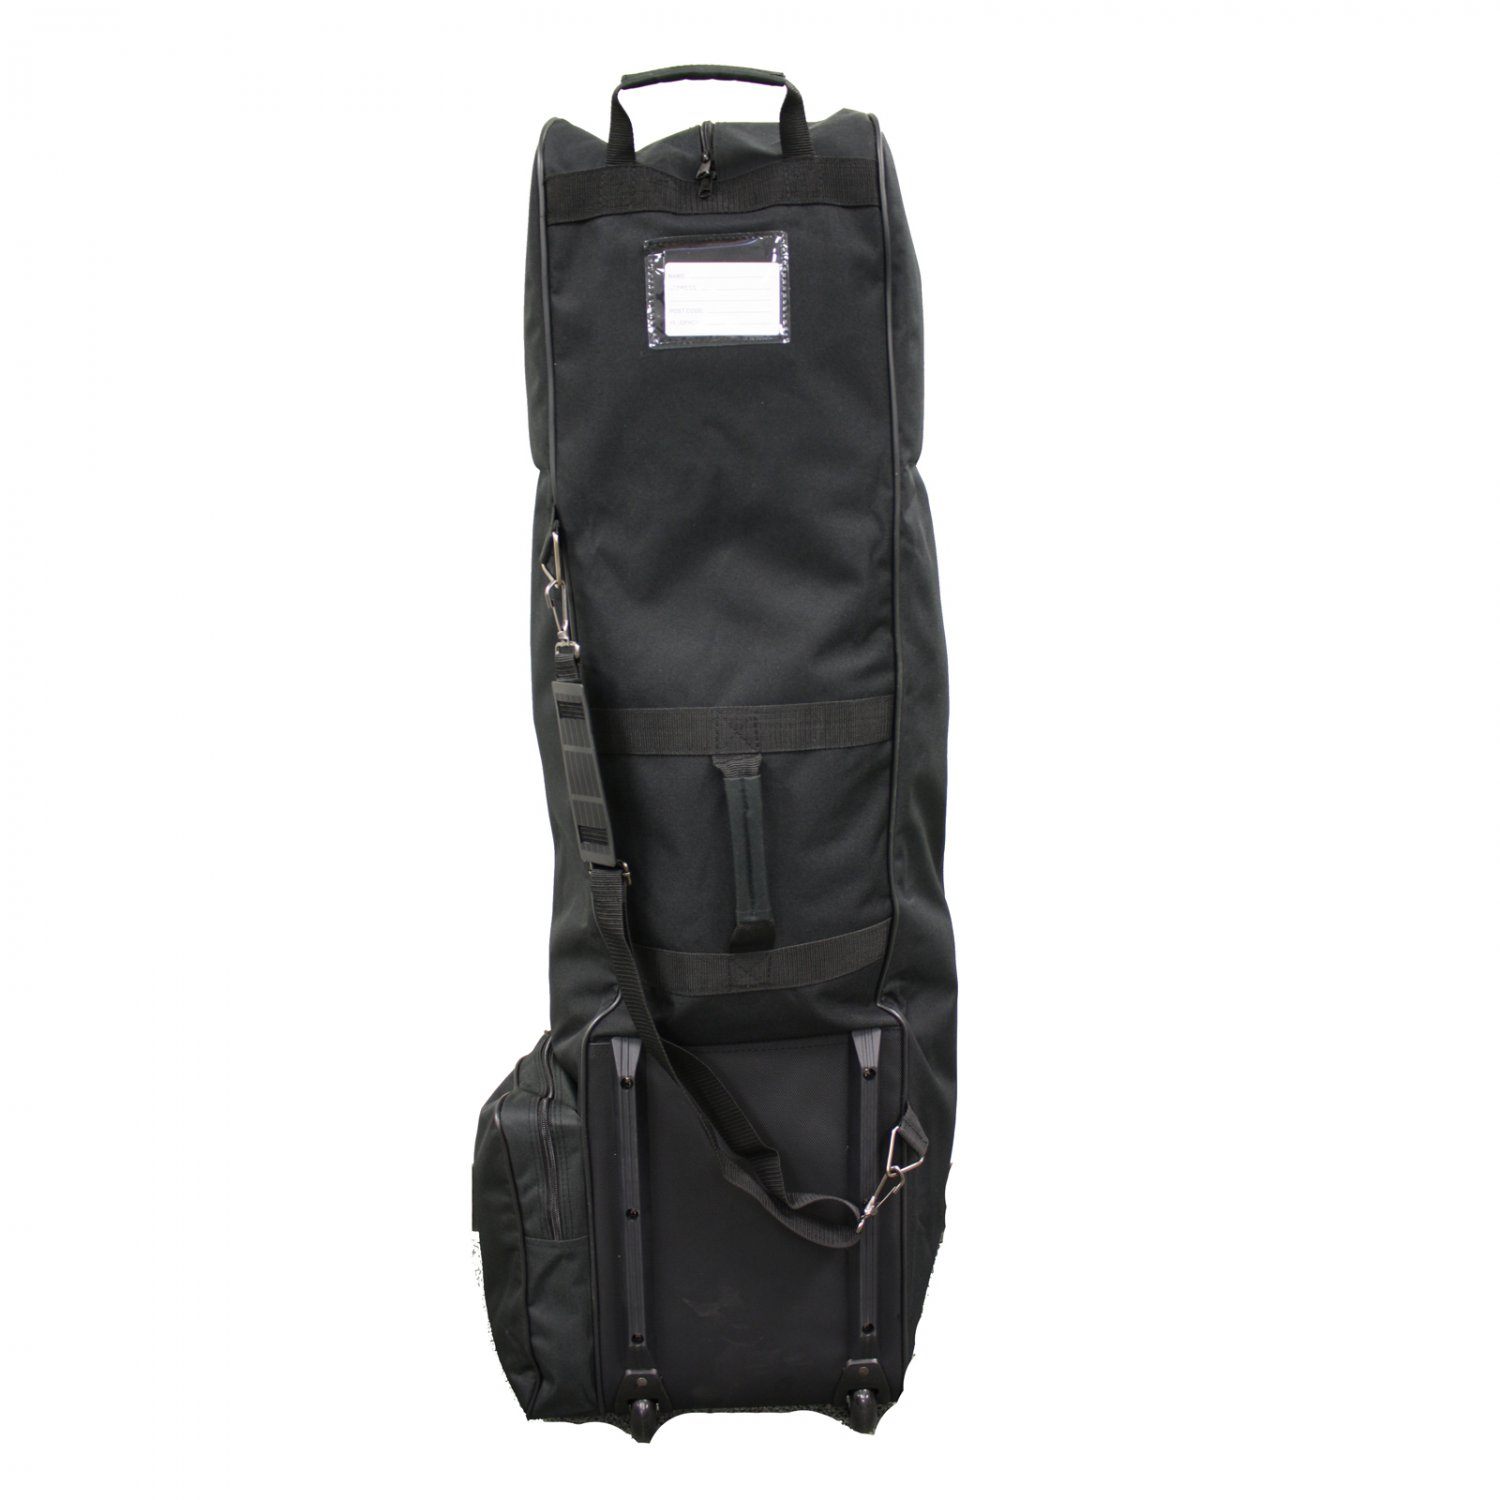 Deluxe GOLF Bag Travel Cover Wheels